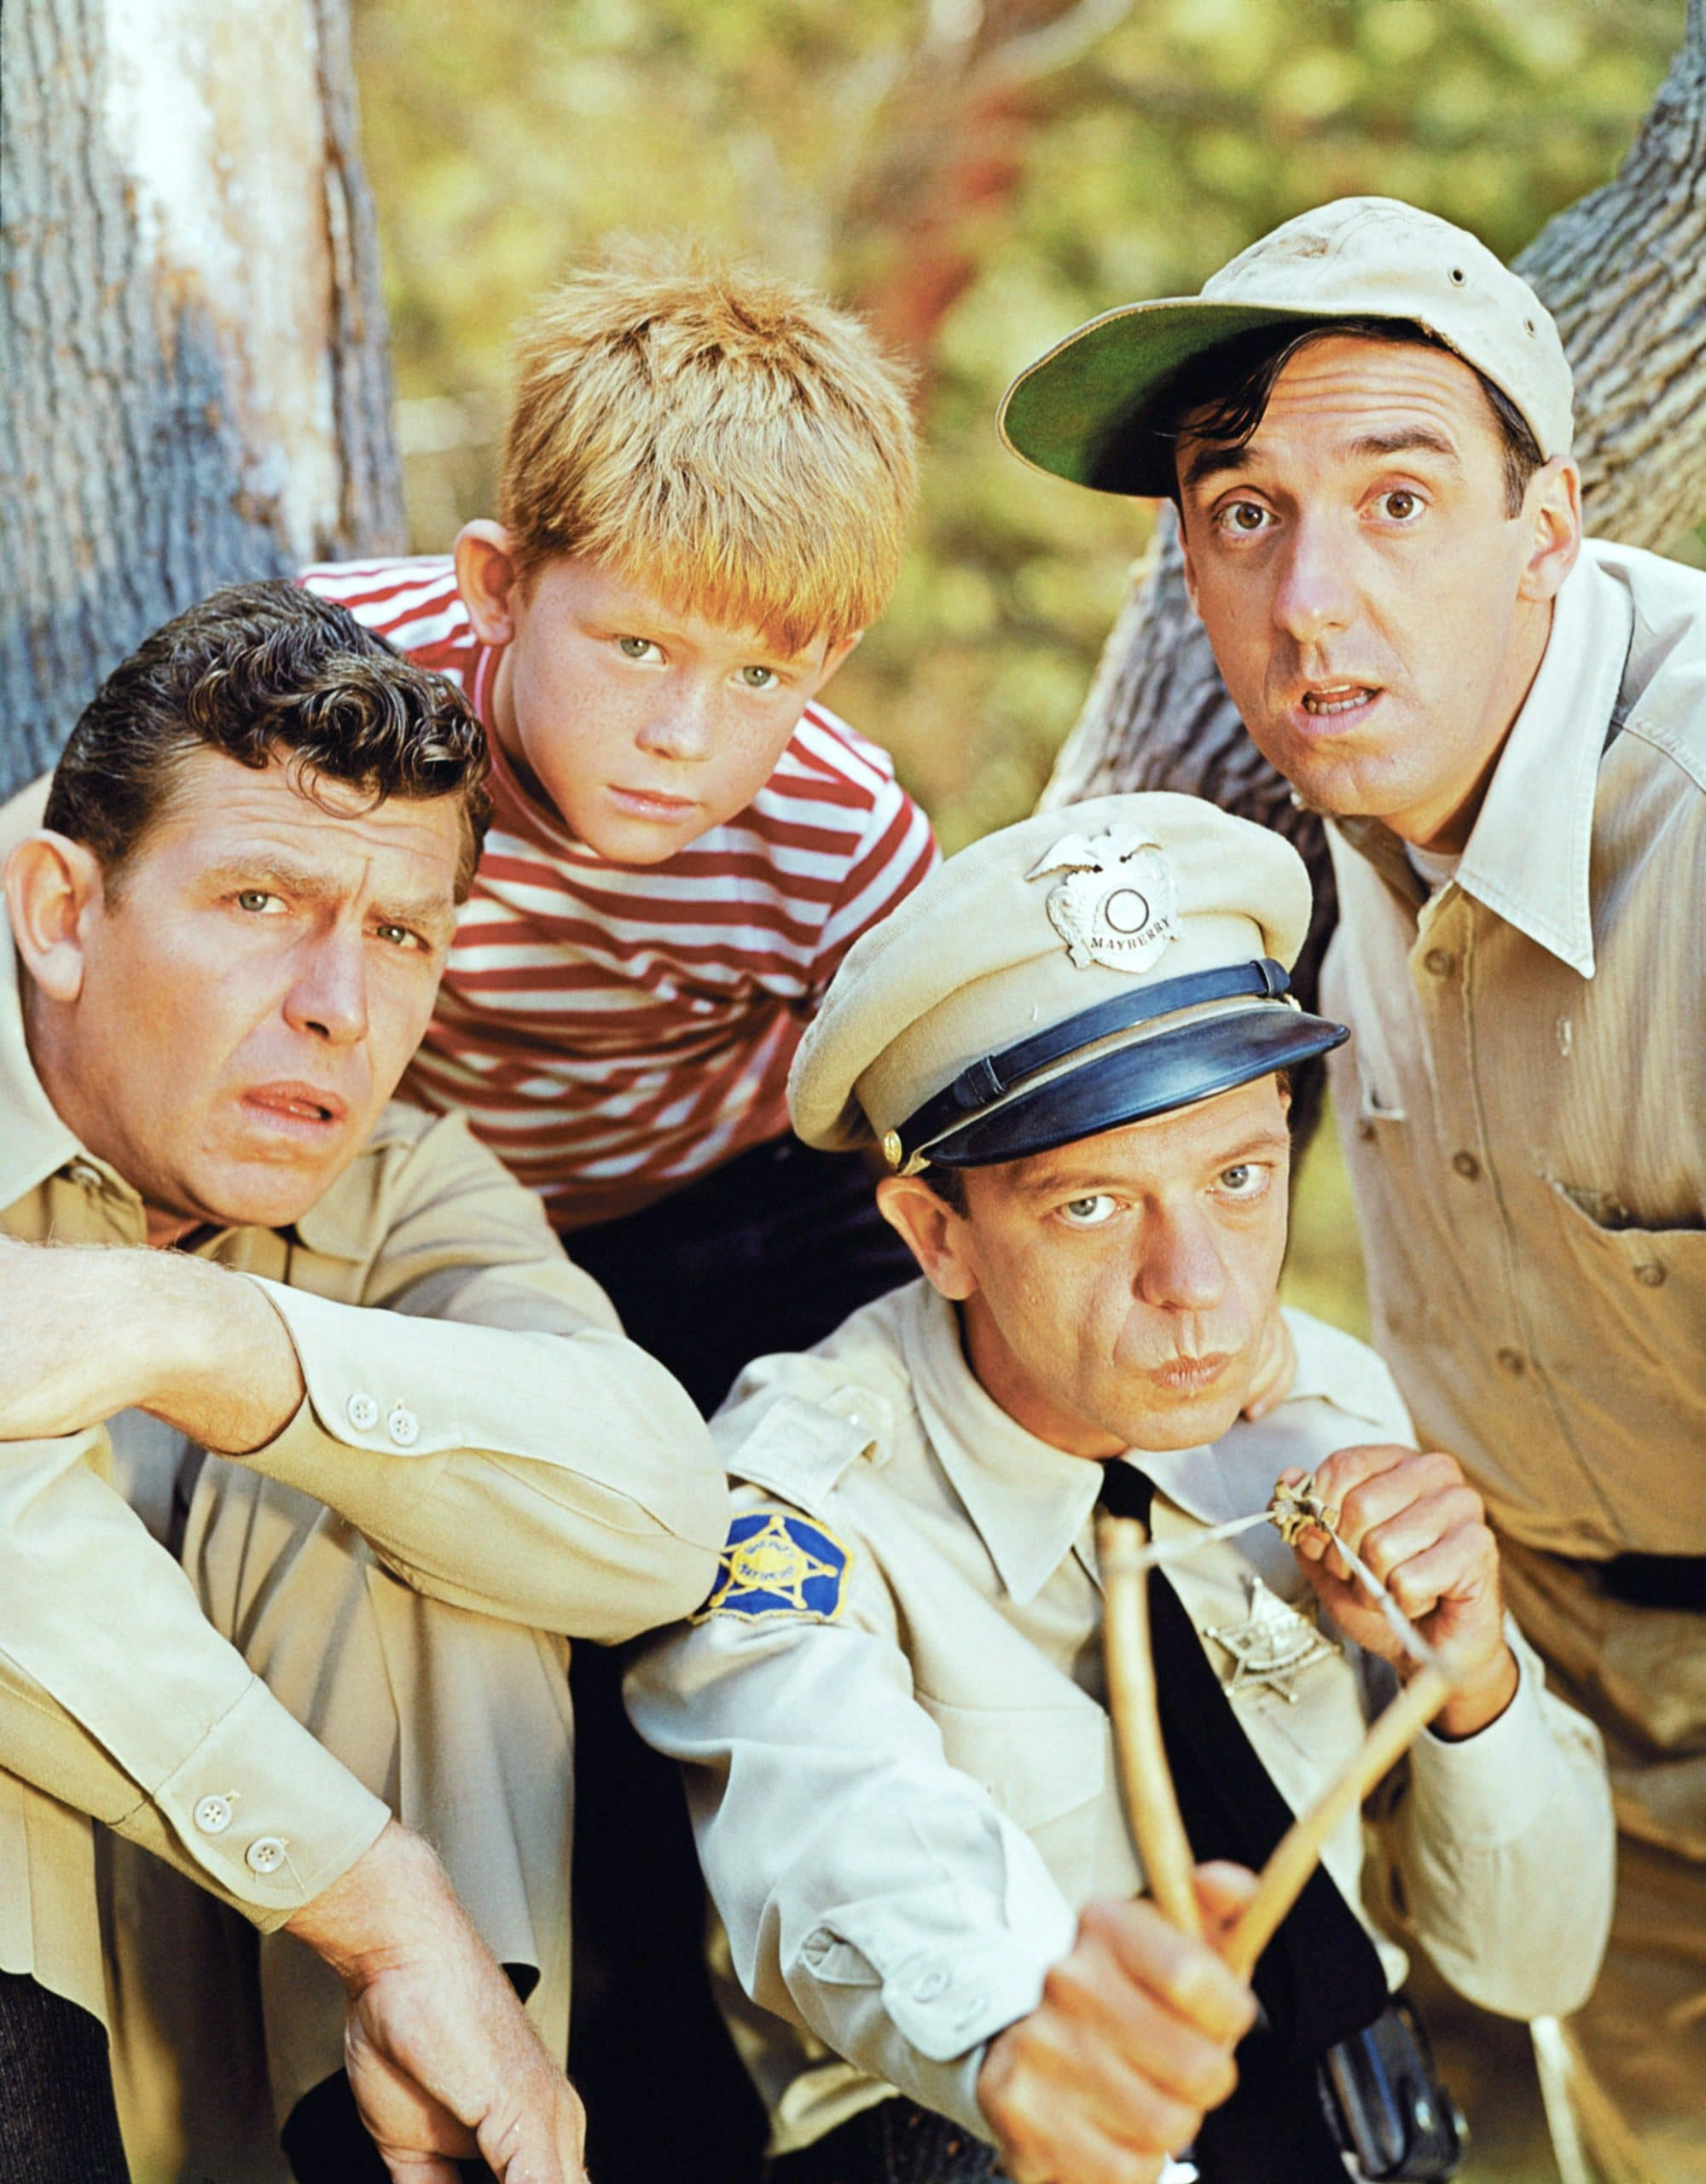 THE ANDY GRIFFITH SHOW, Andy Griffith, Ron Howard, Don Knotts, Jim Nabors, 1960-68